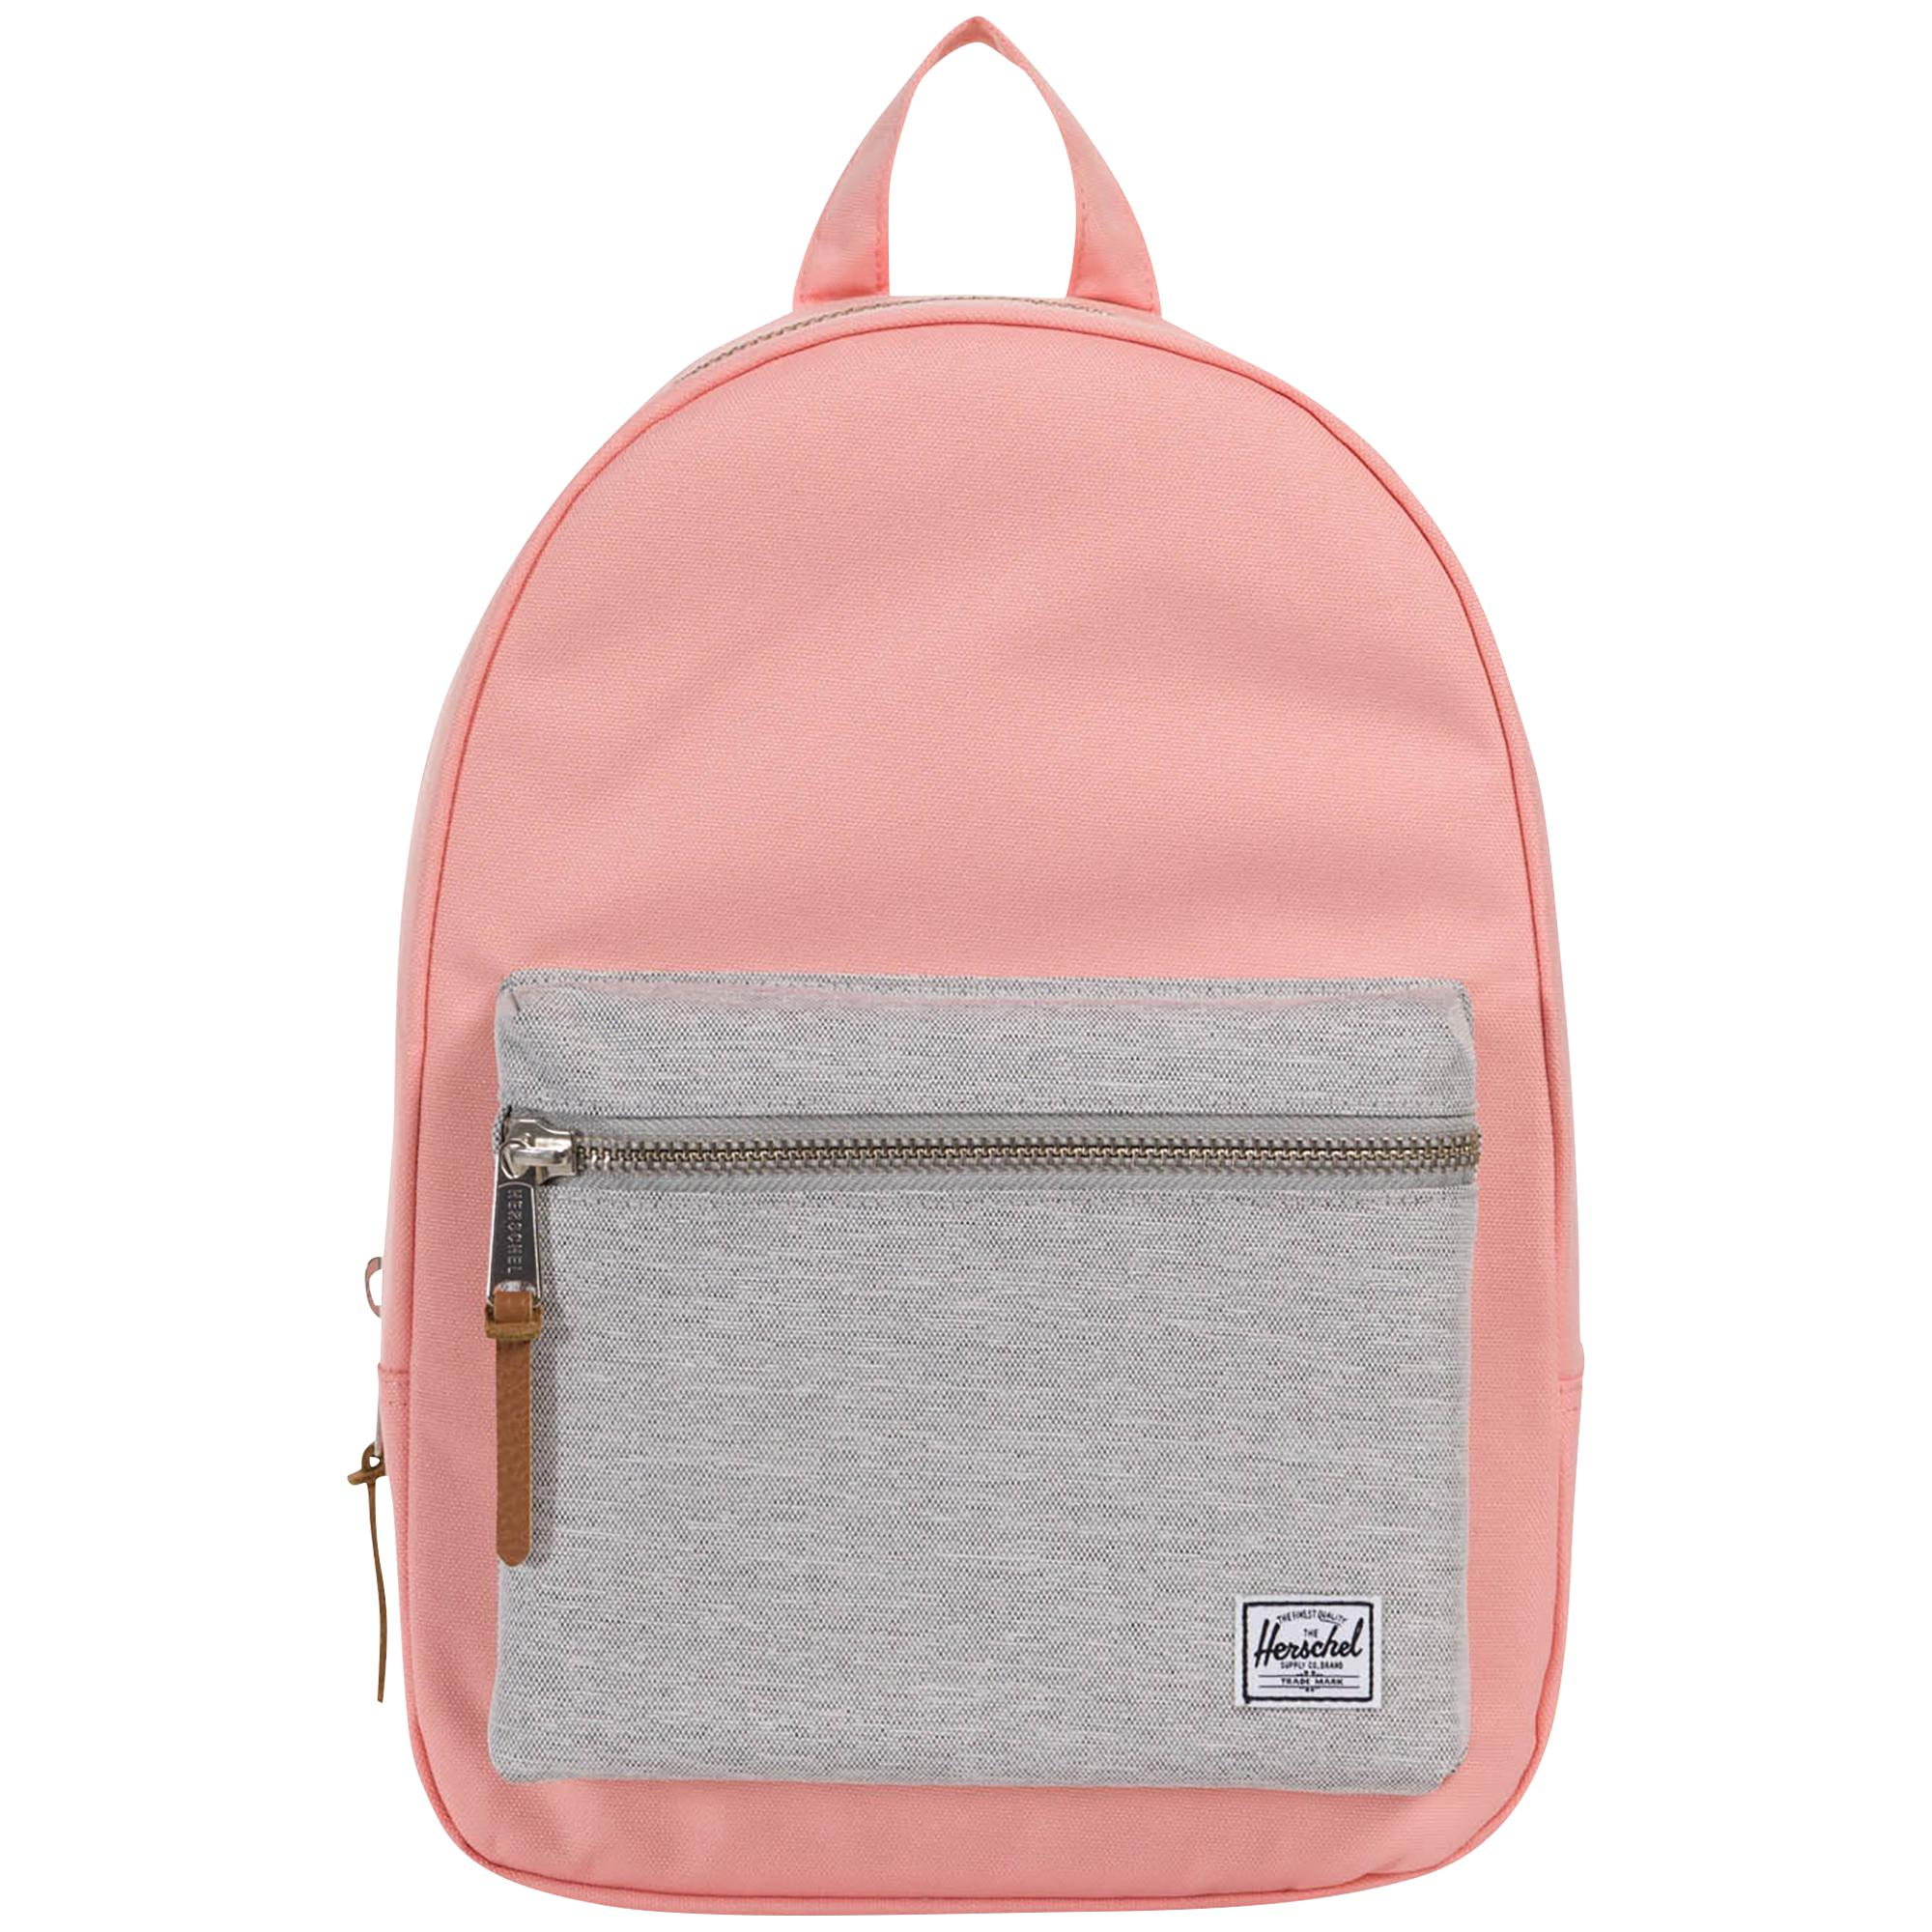 e52f5f88c5 Lyst - Herschel Supply Co. Grove Xs Backpack in Pink